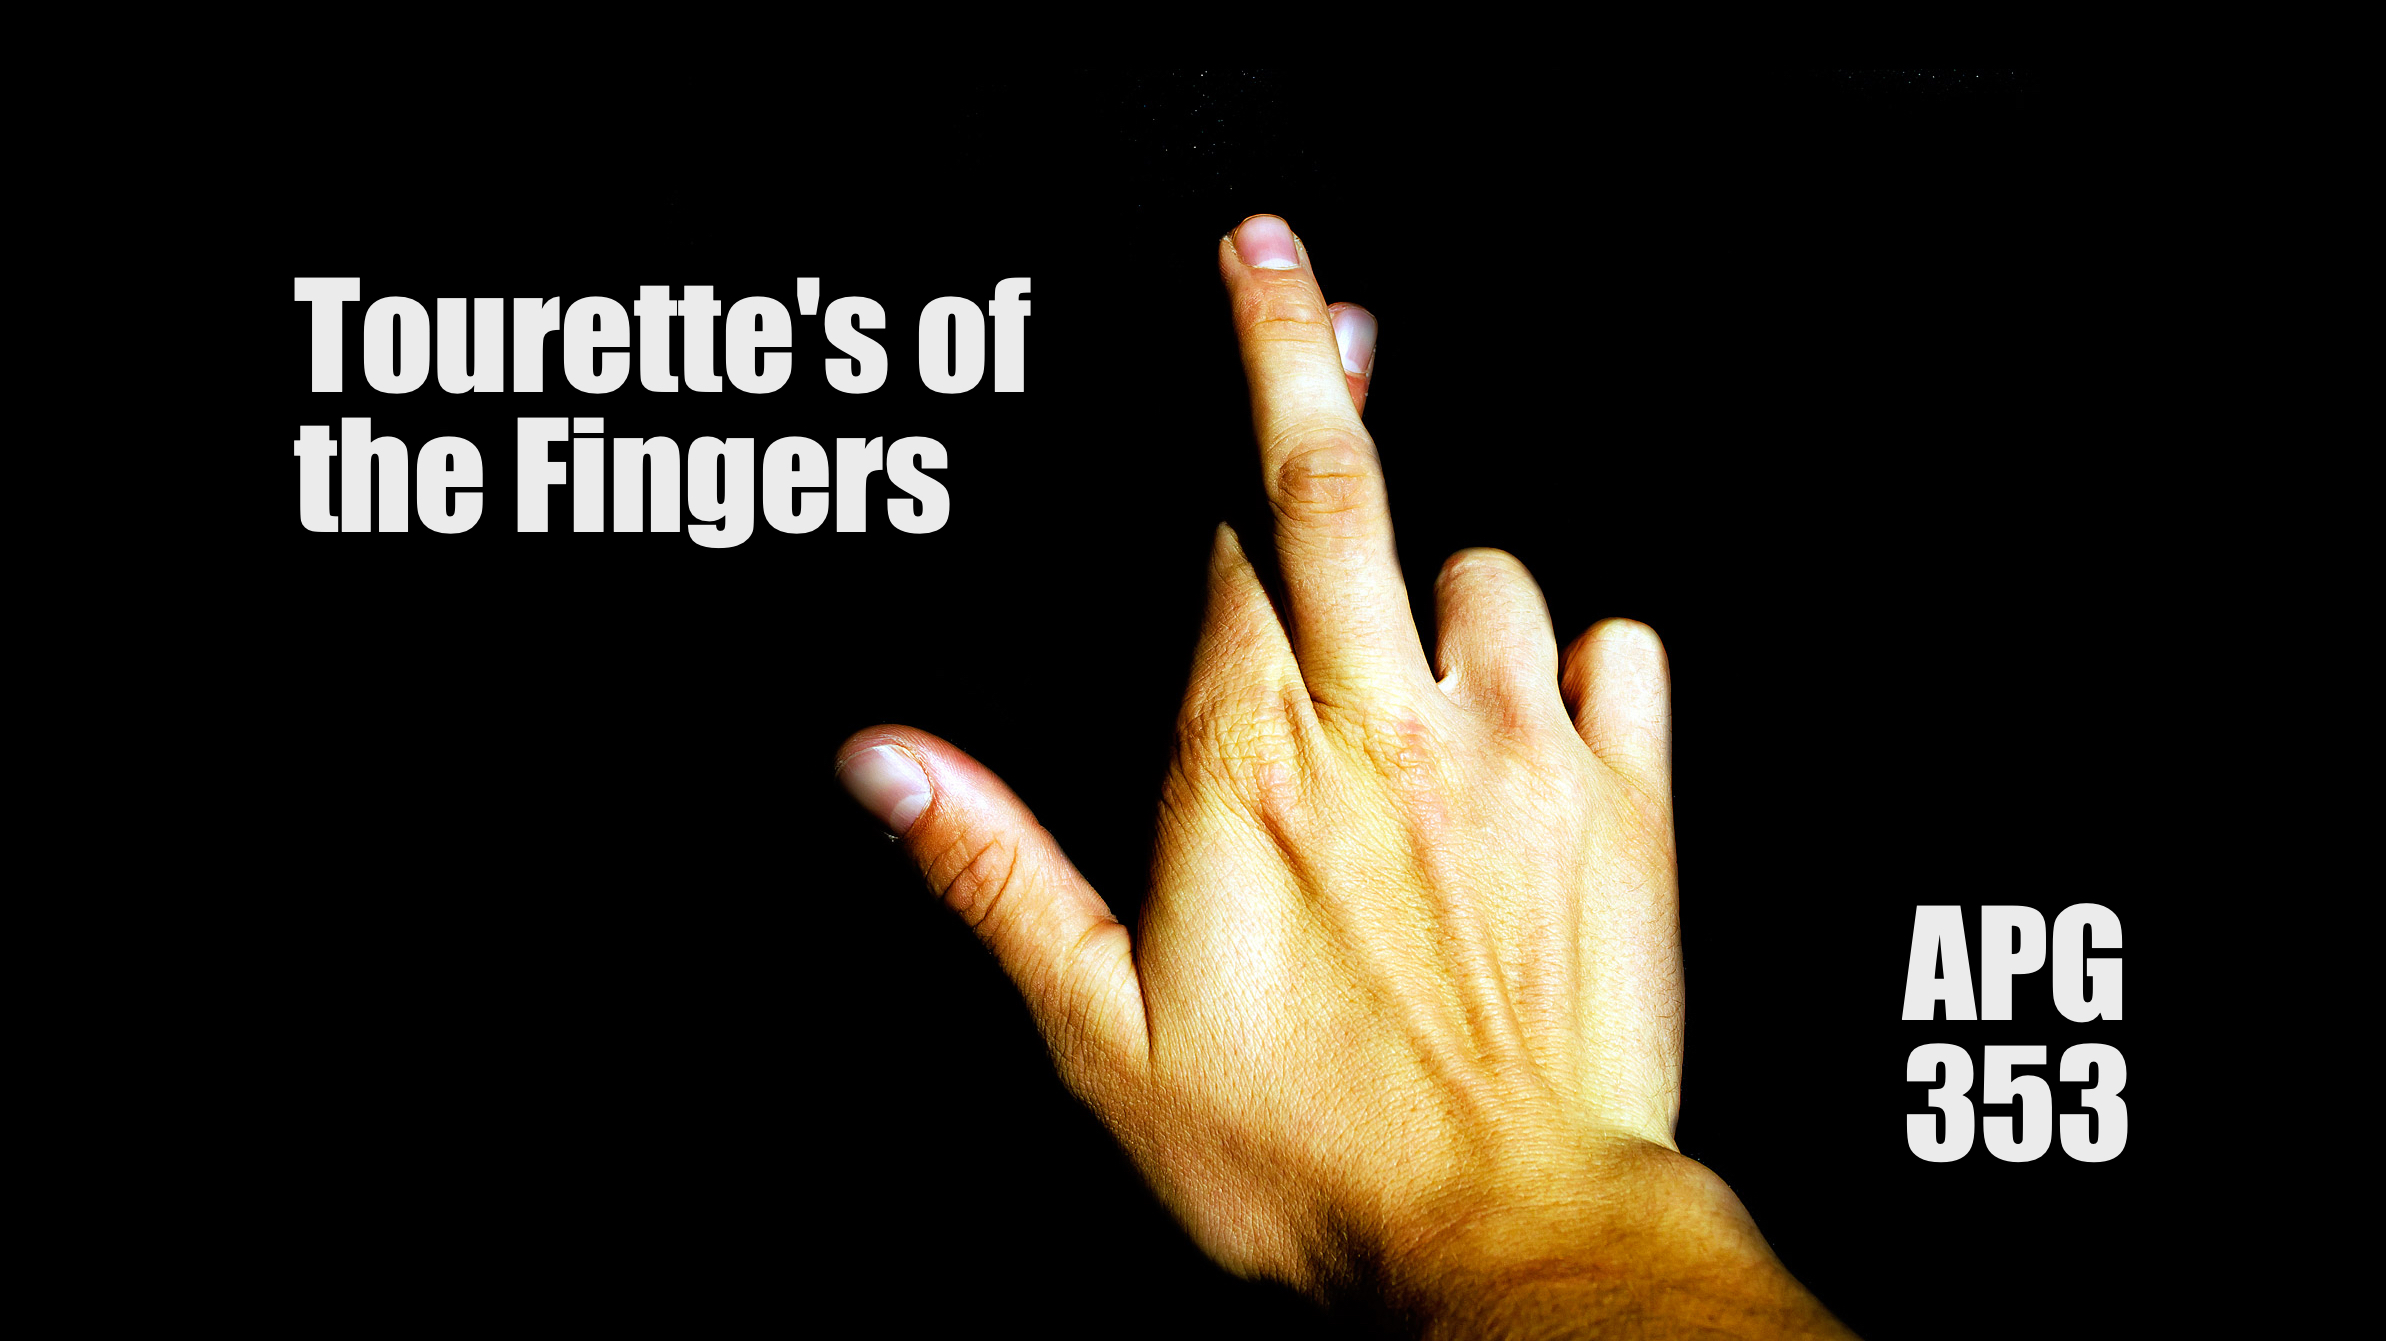 APG 353 – Tourette's of the Fingers